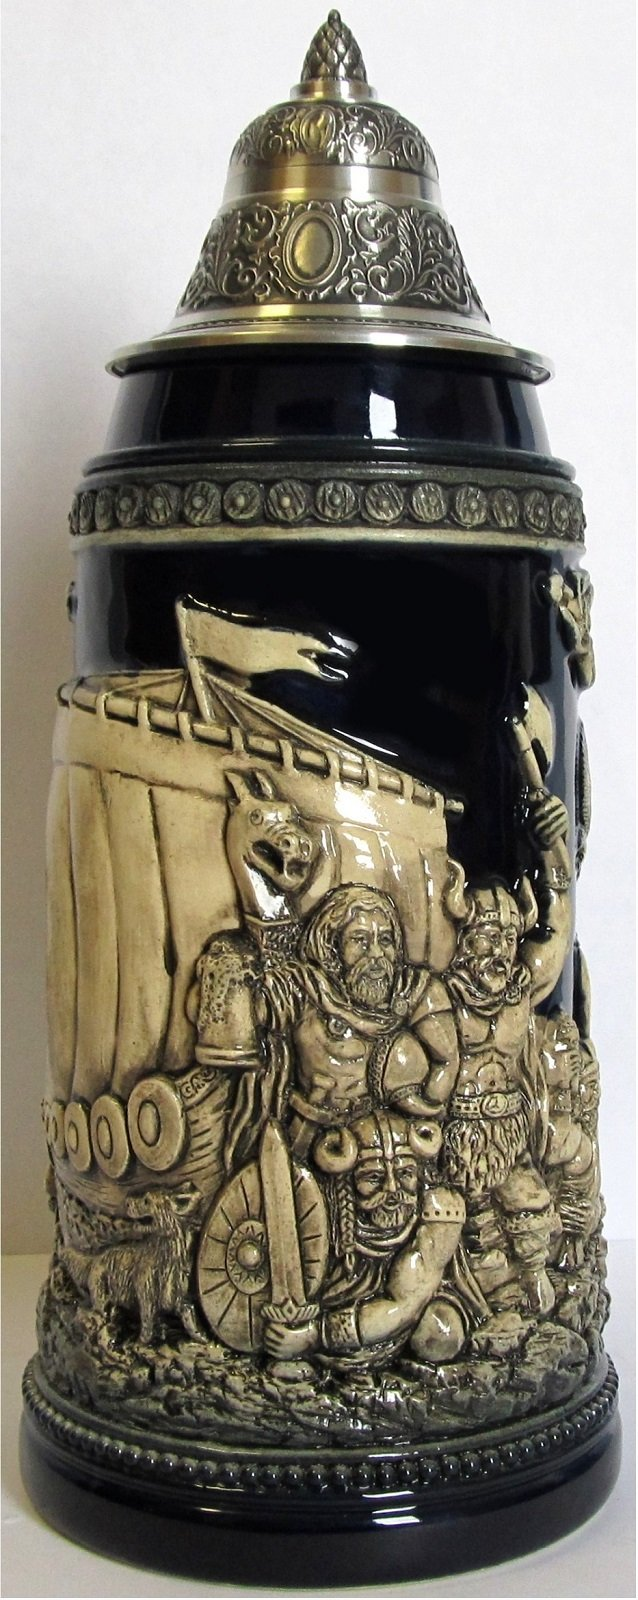 Leif Erikson Norse Explorer Discovers America LE German Relief Stein .75L Viking by Pinnacle Peak Trading Company